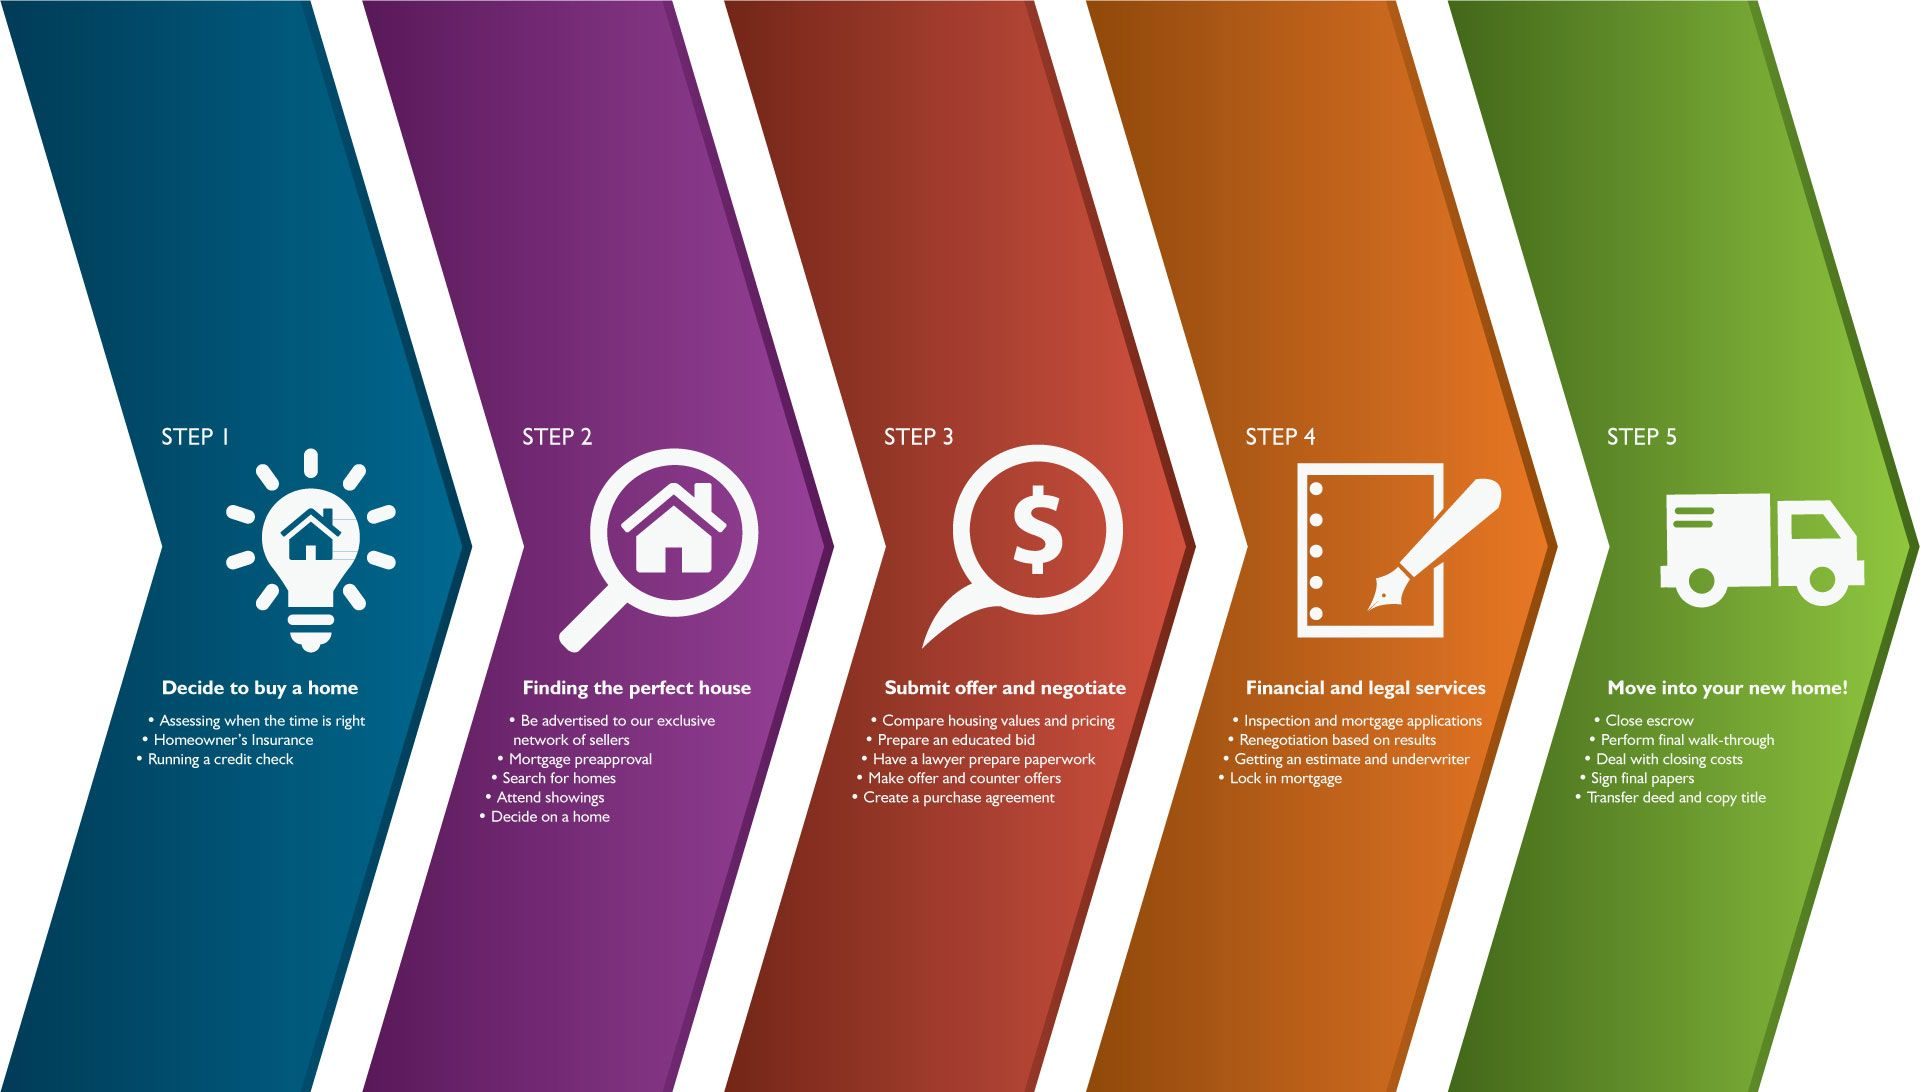 Image Result For Home Buying Escrow Timeline Graphic Home Buying